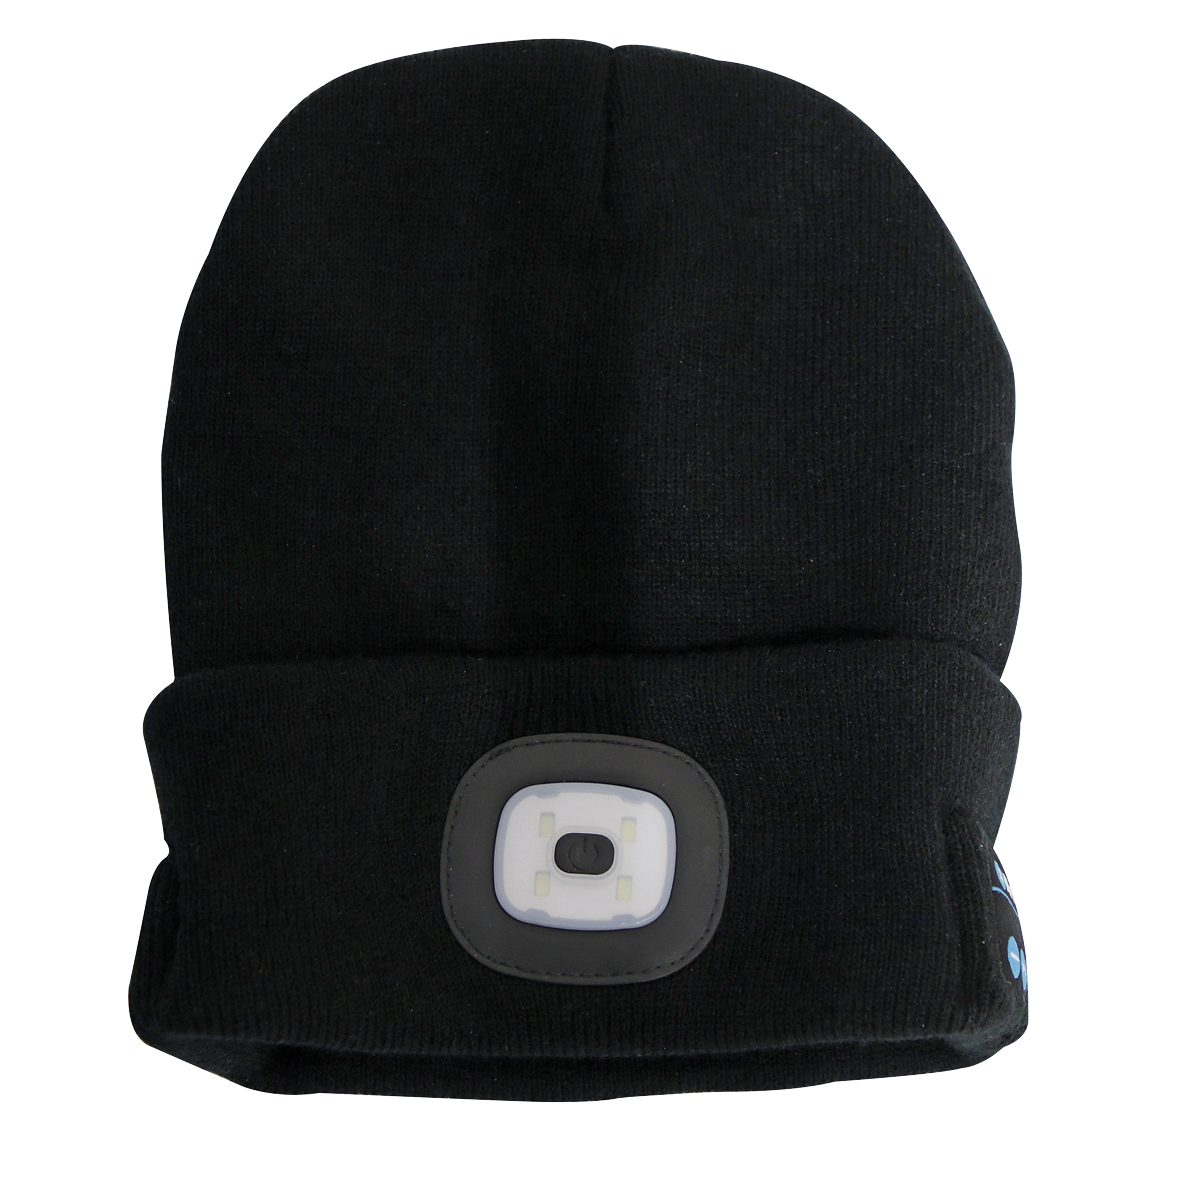 Beanie Hat 4 SMD LED USB Rechargeable with Wireless Headphones